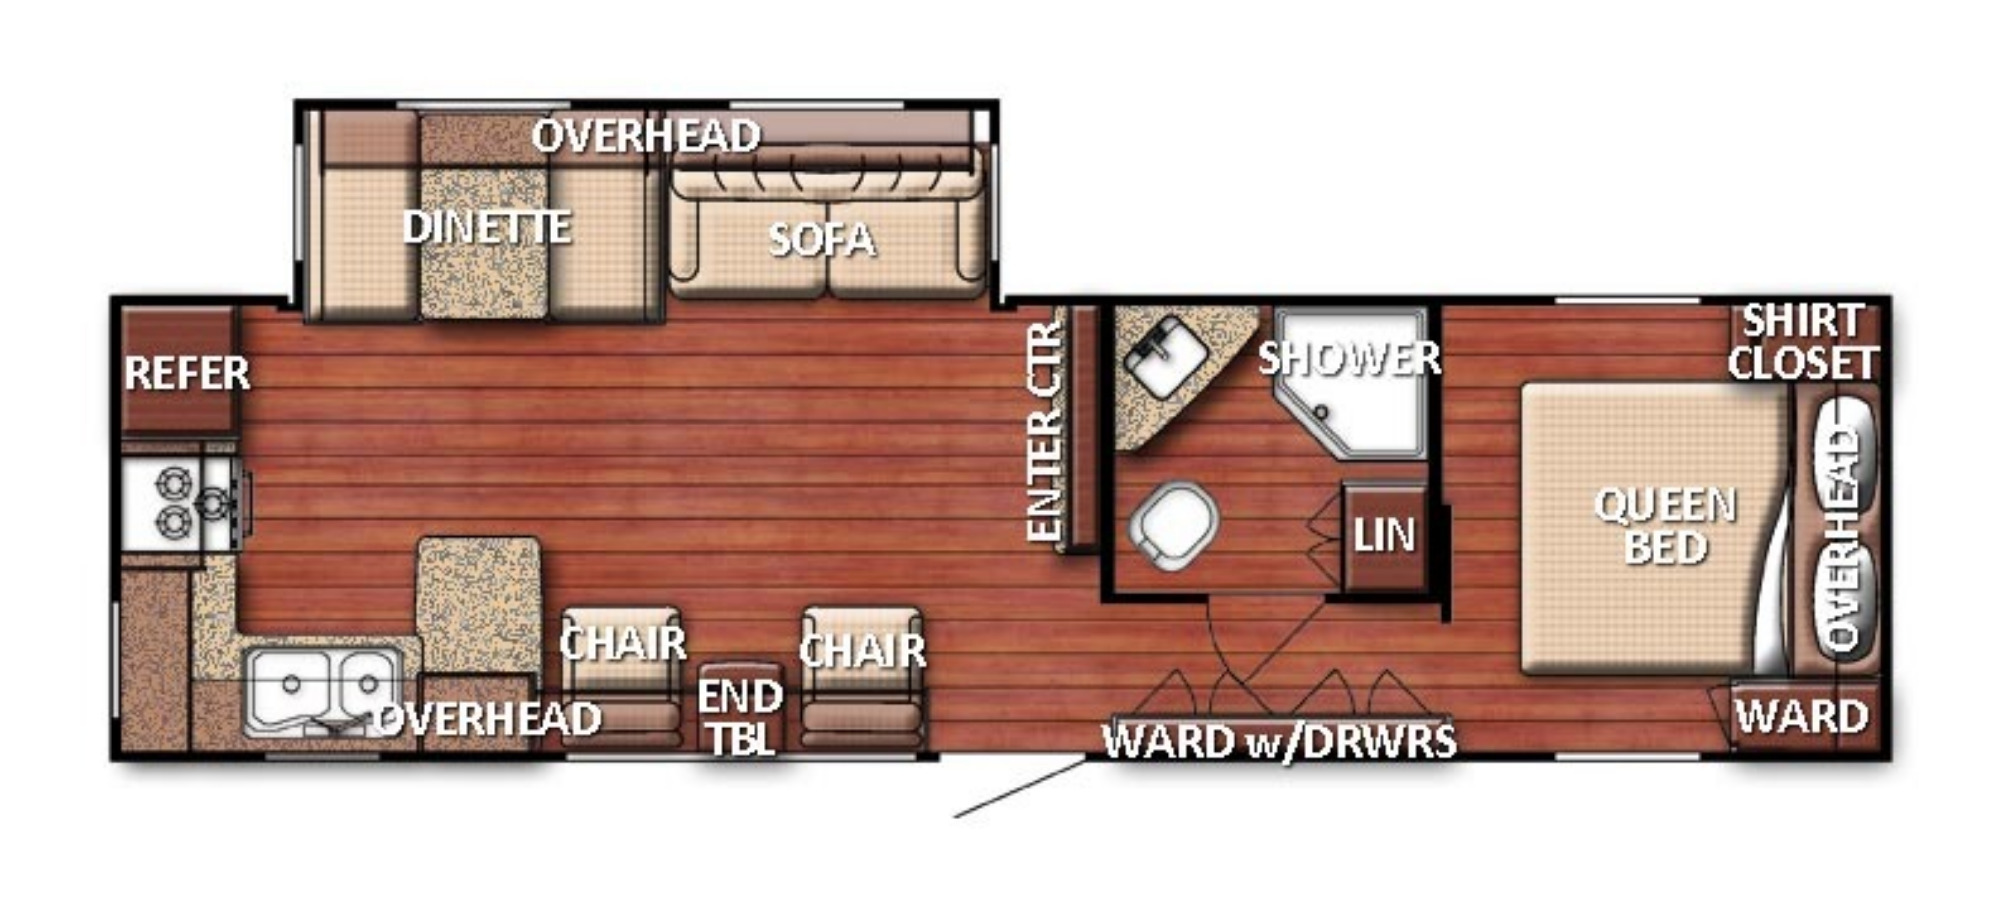 View Floor Plan for 2020 GULF STREAM CONQUEST 295SBW